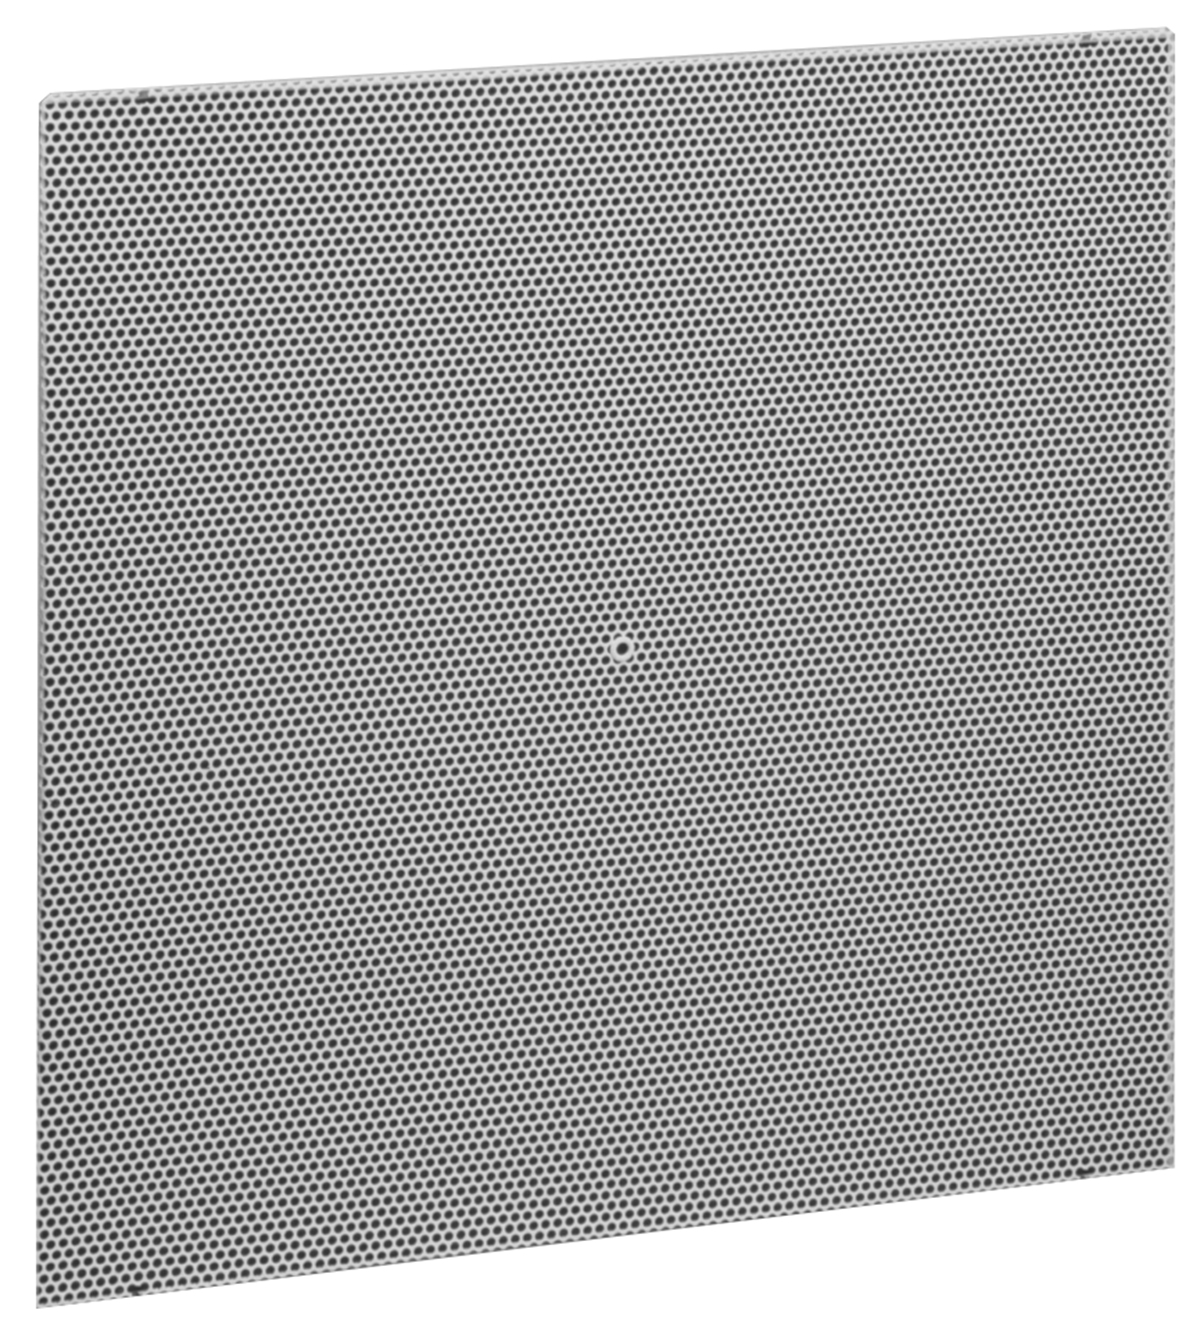 #383838 RENP Steel Perforated Return With R4.2 Molded Insulation  Highly Rated 5799 Perforated Ceiling Diffuser wallpapers with 1200x1342 px on helpvideos.info - Air Conditioners, Air Coolers and more